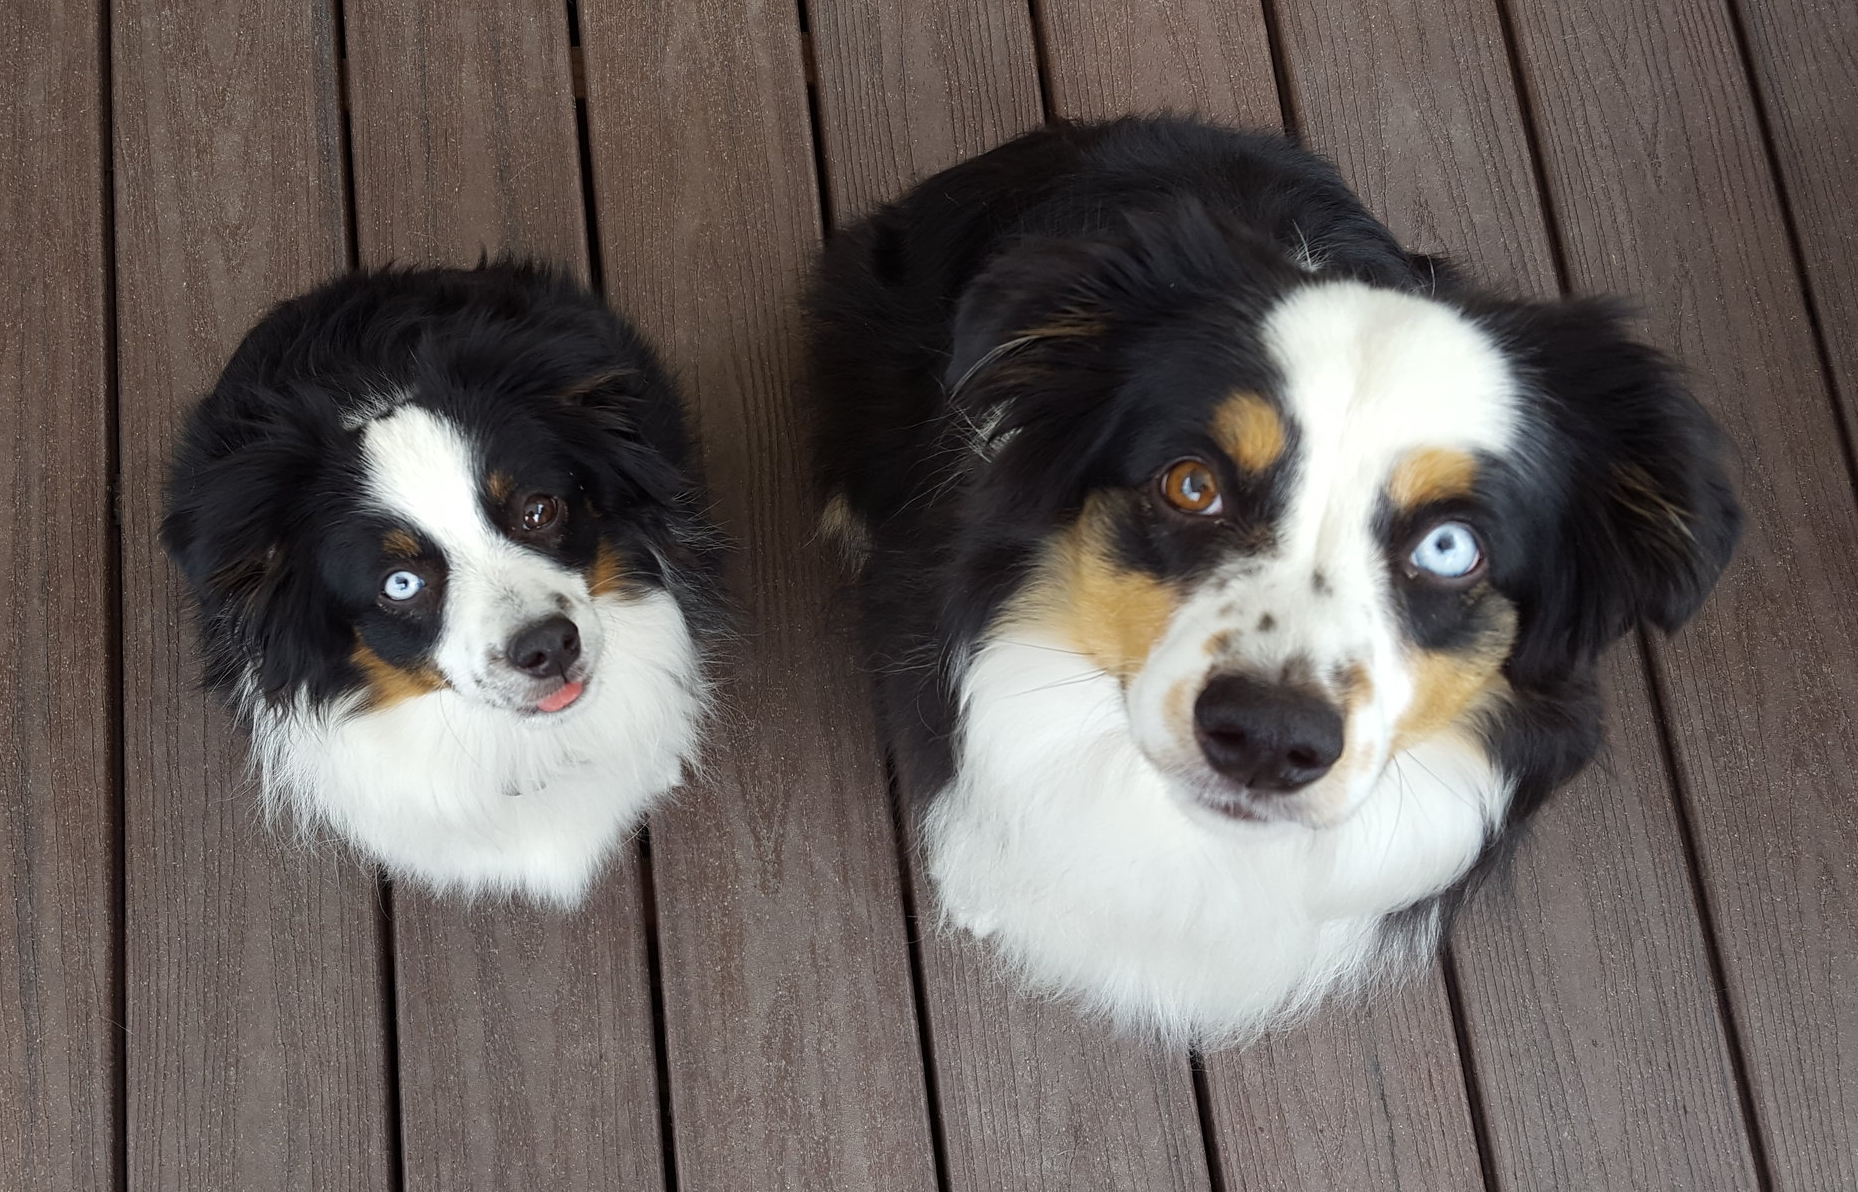 Almost Twins: Maeve of Fort Collins, CO and Panda of Phoenix, AZ